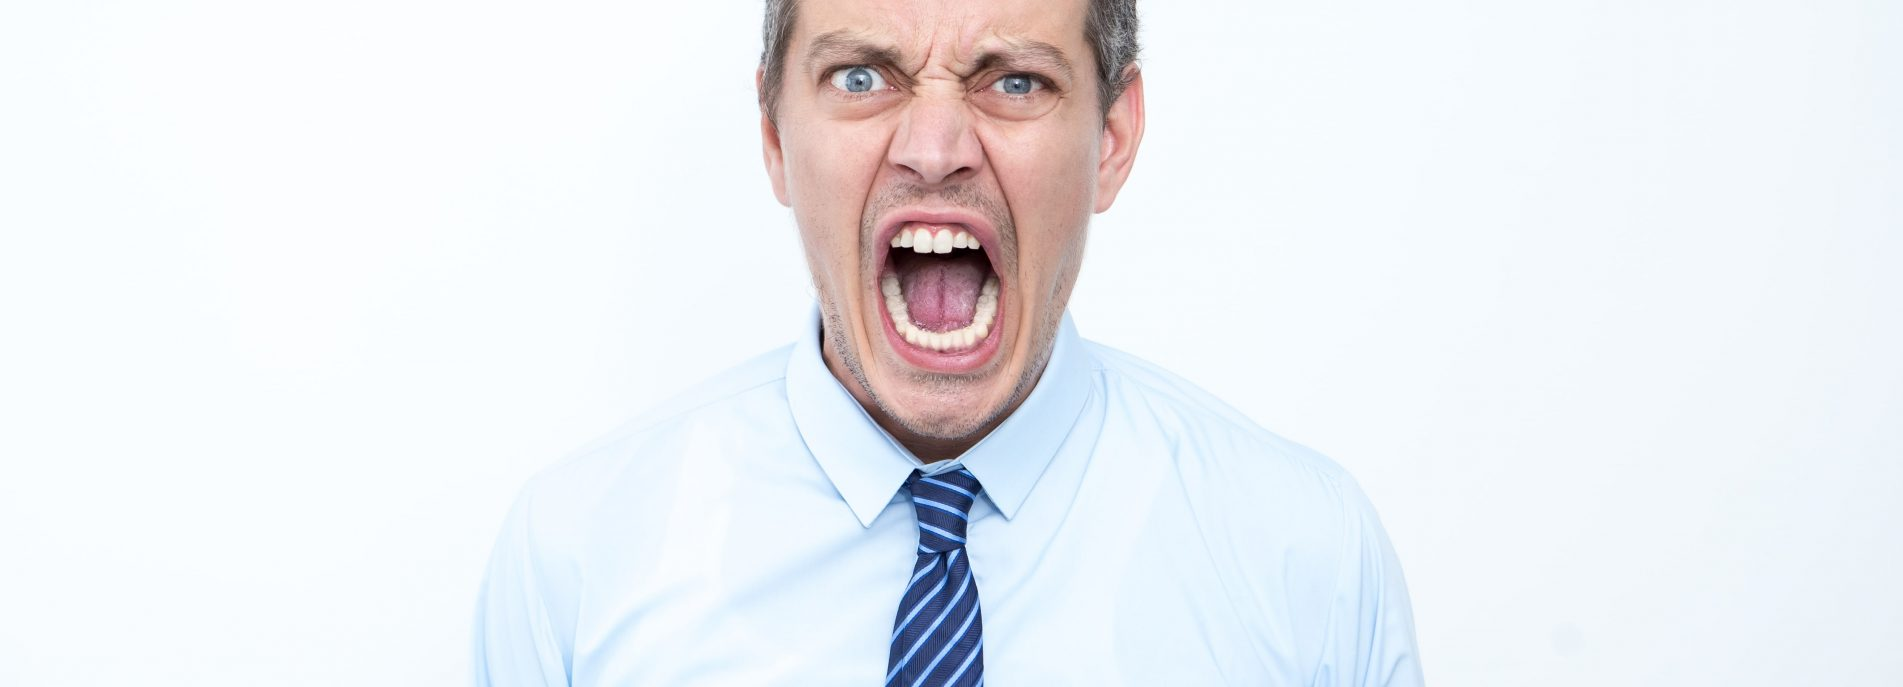 Anger management: Control your mind and not let your mind control you! background image